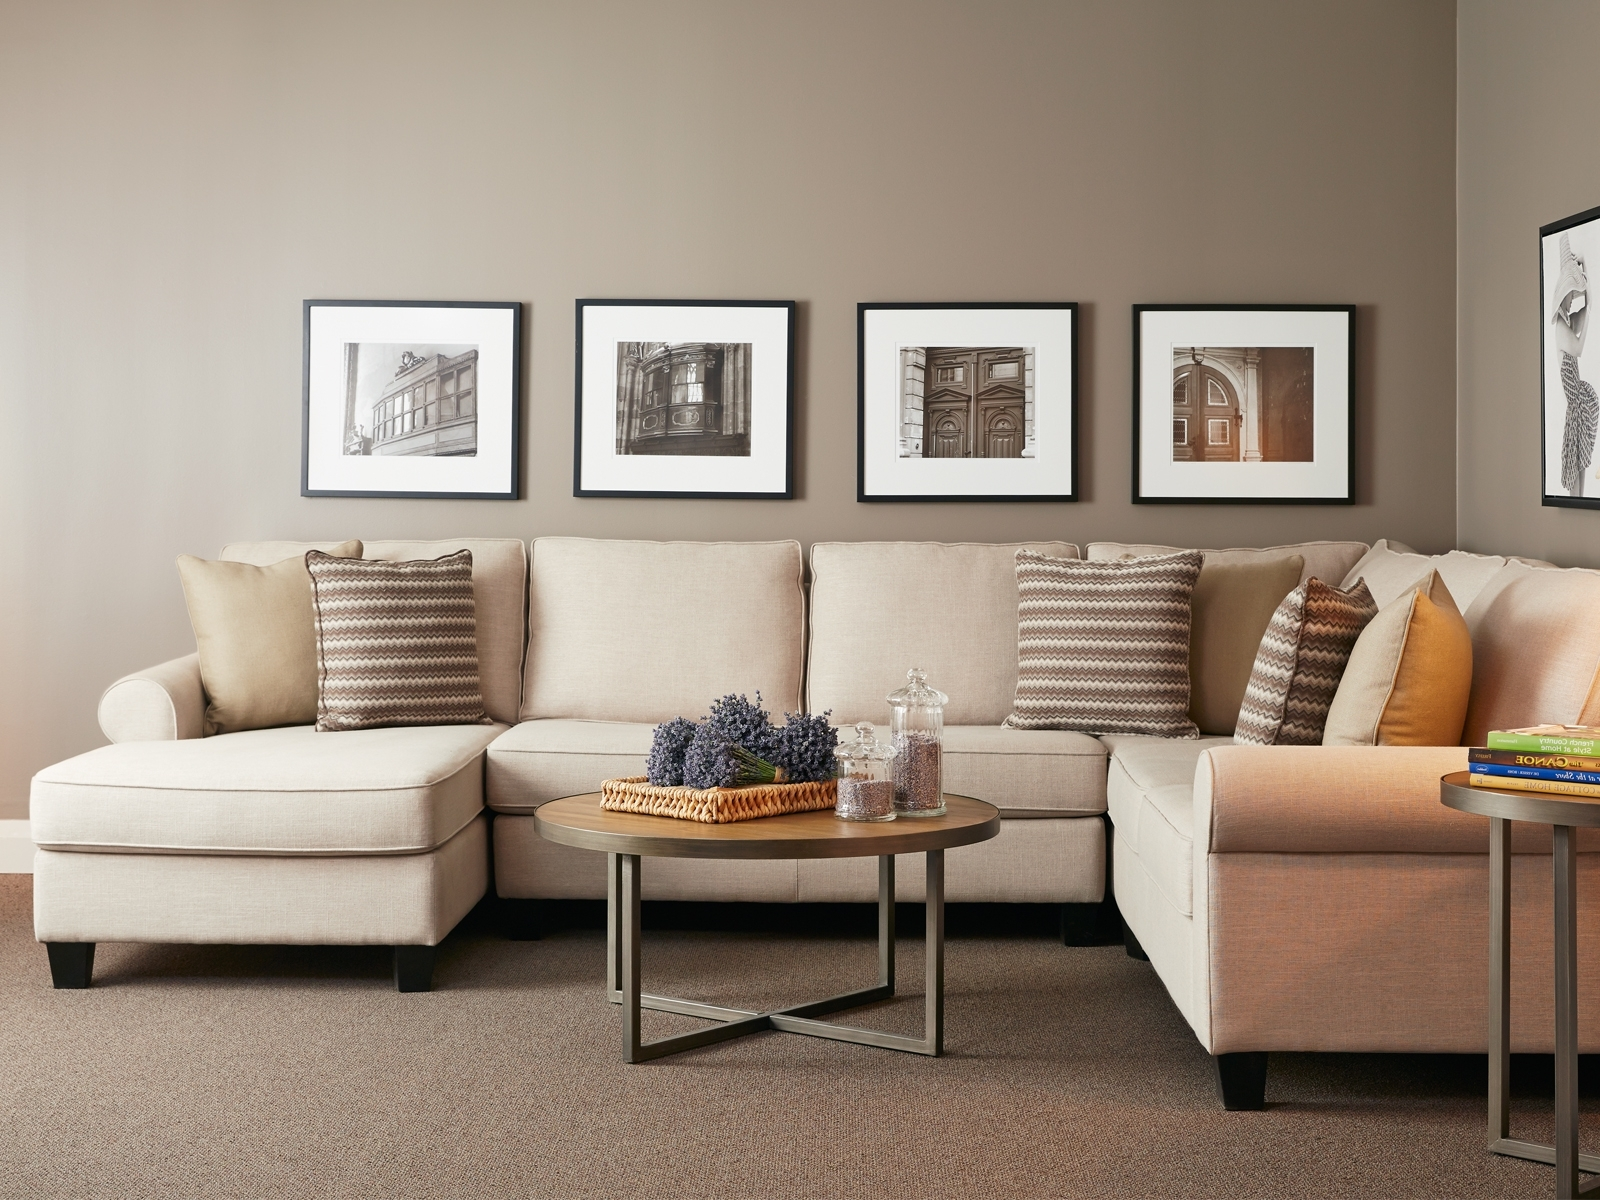 Brentwood Classics With Regard To Ontario Canada Sectional Sofas (View 5 of 20)